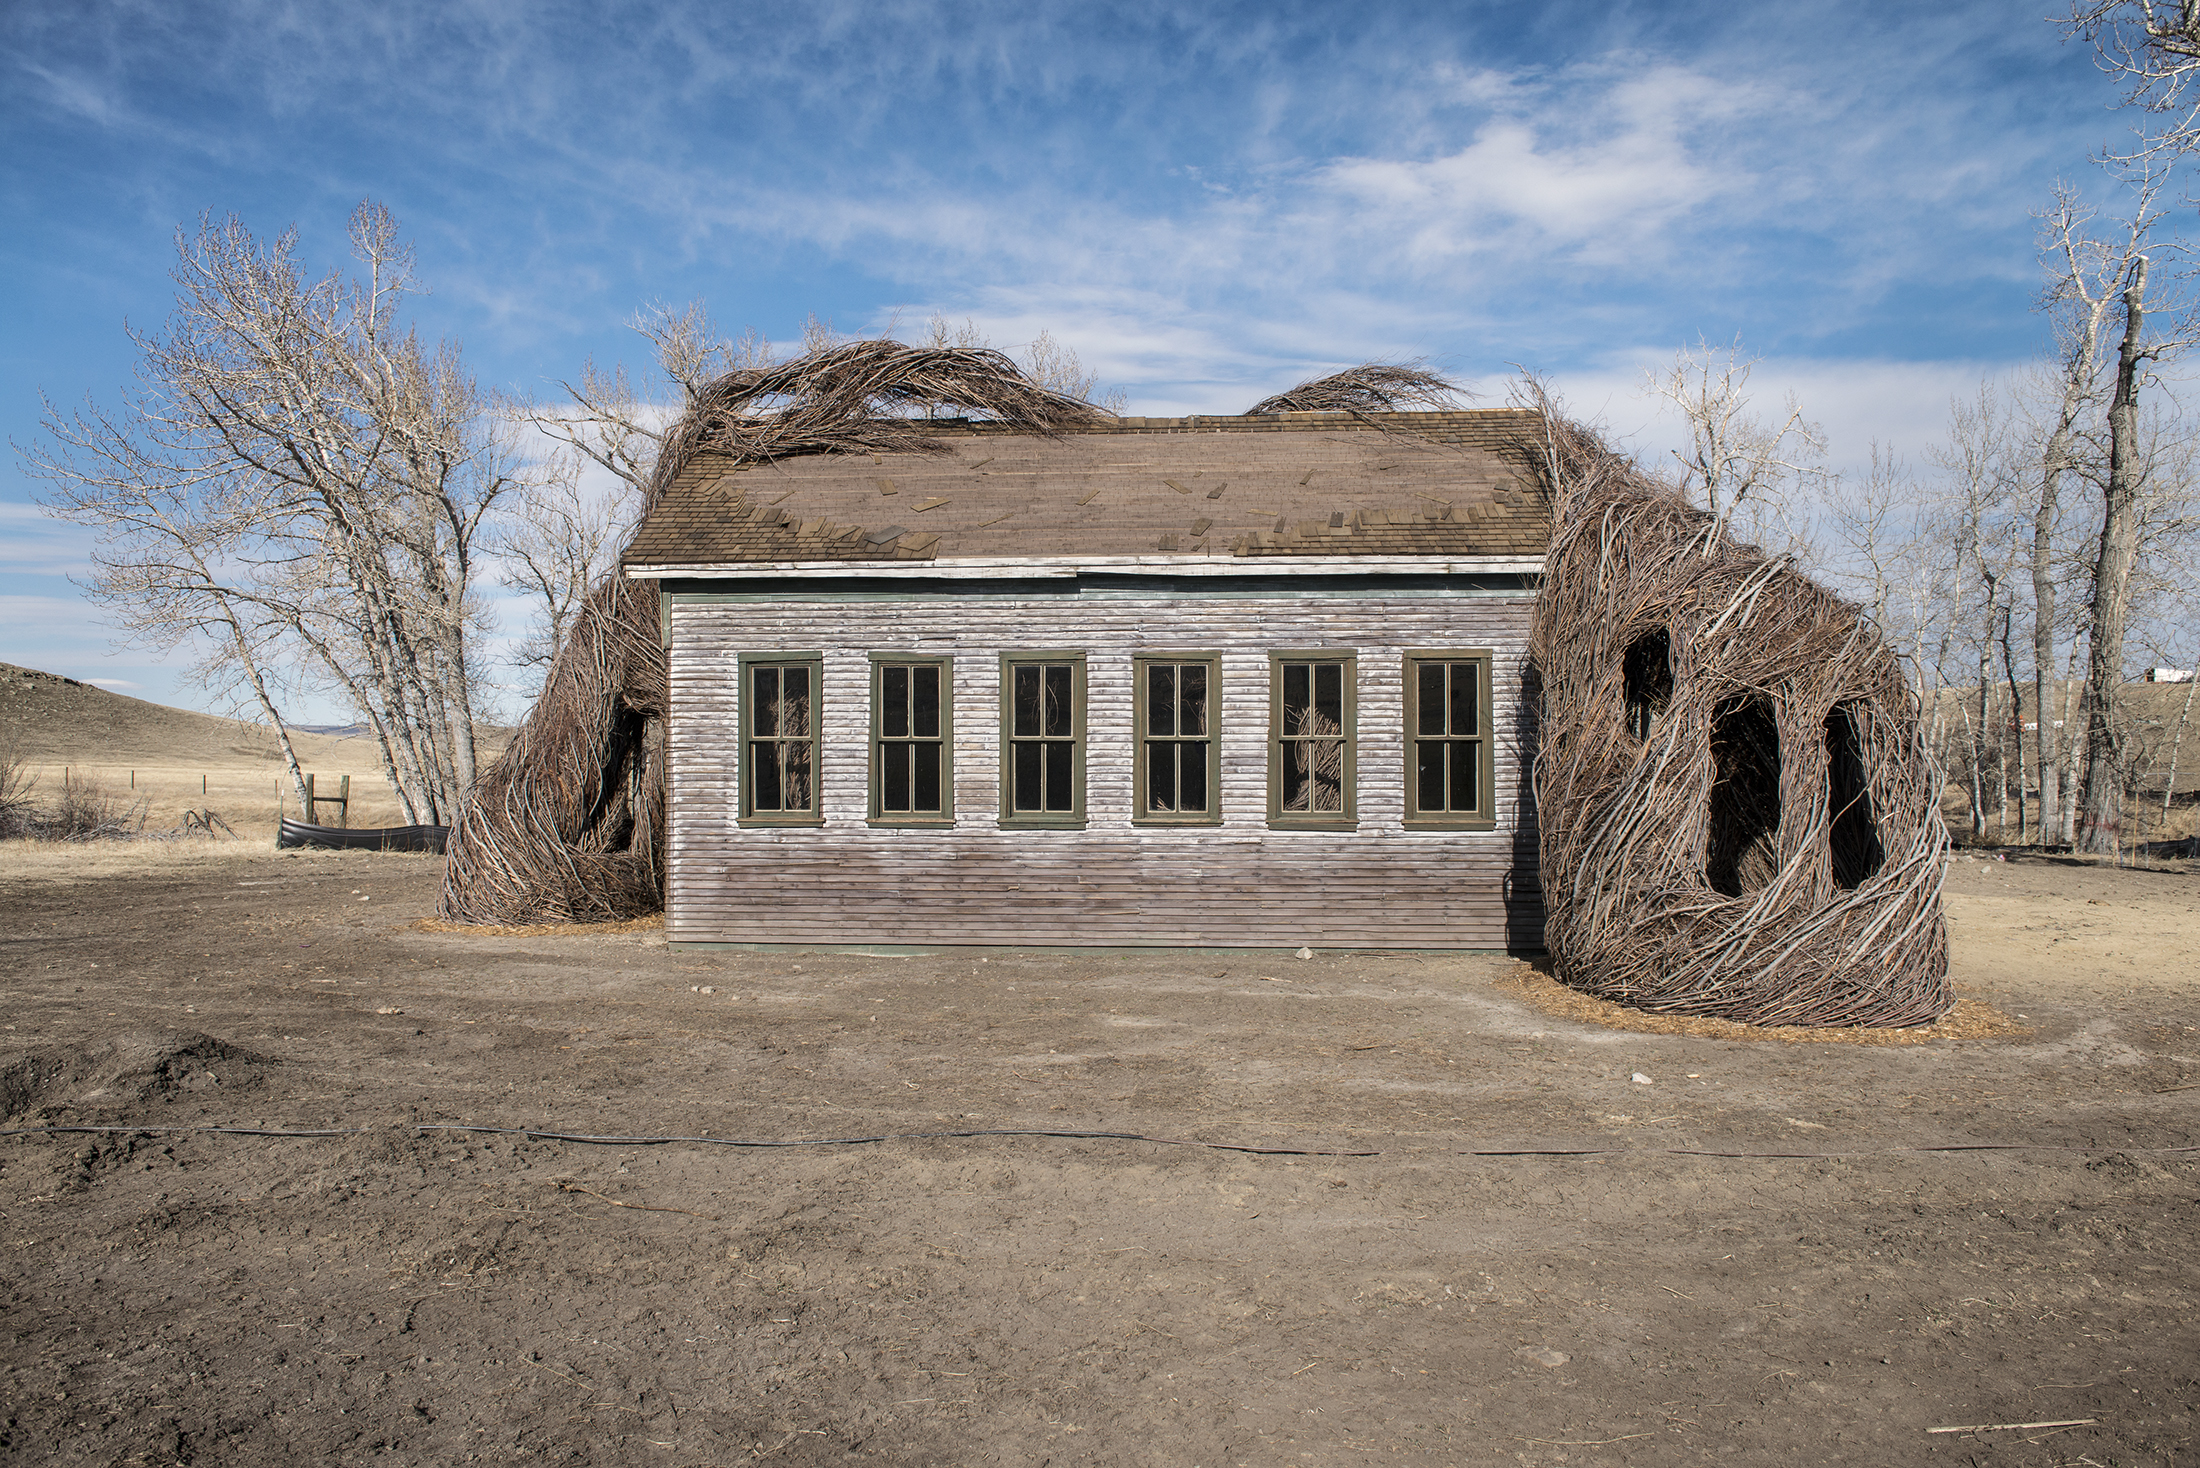 """Patrick Dougherty's """"Daydreams"""" is a model of a nineteenth-century schoolhouse engulfed by a mass of twigs. (Photo: Alexis Pike/Surface)"""